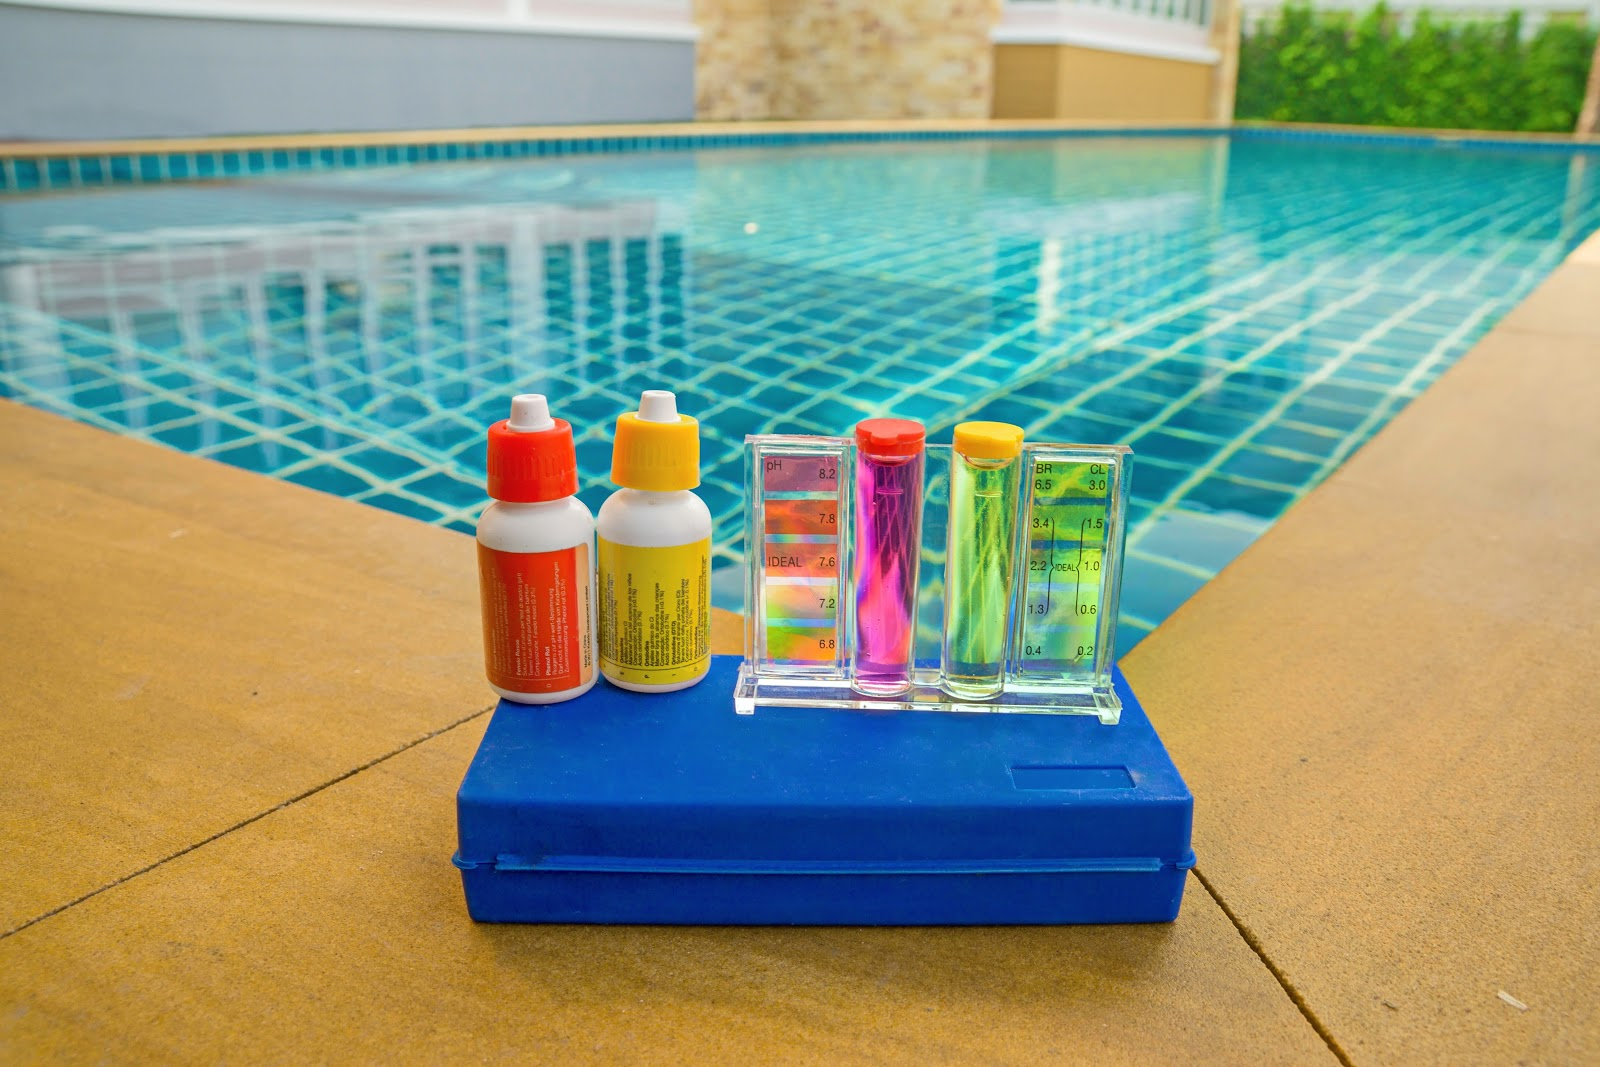 a pool water test kit with colored solutions and test tubes sitting on a blue box next to an inground pool